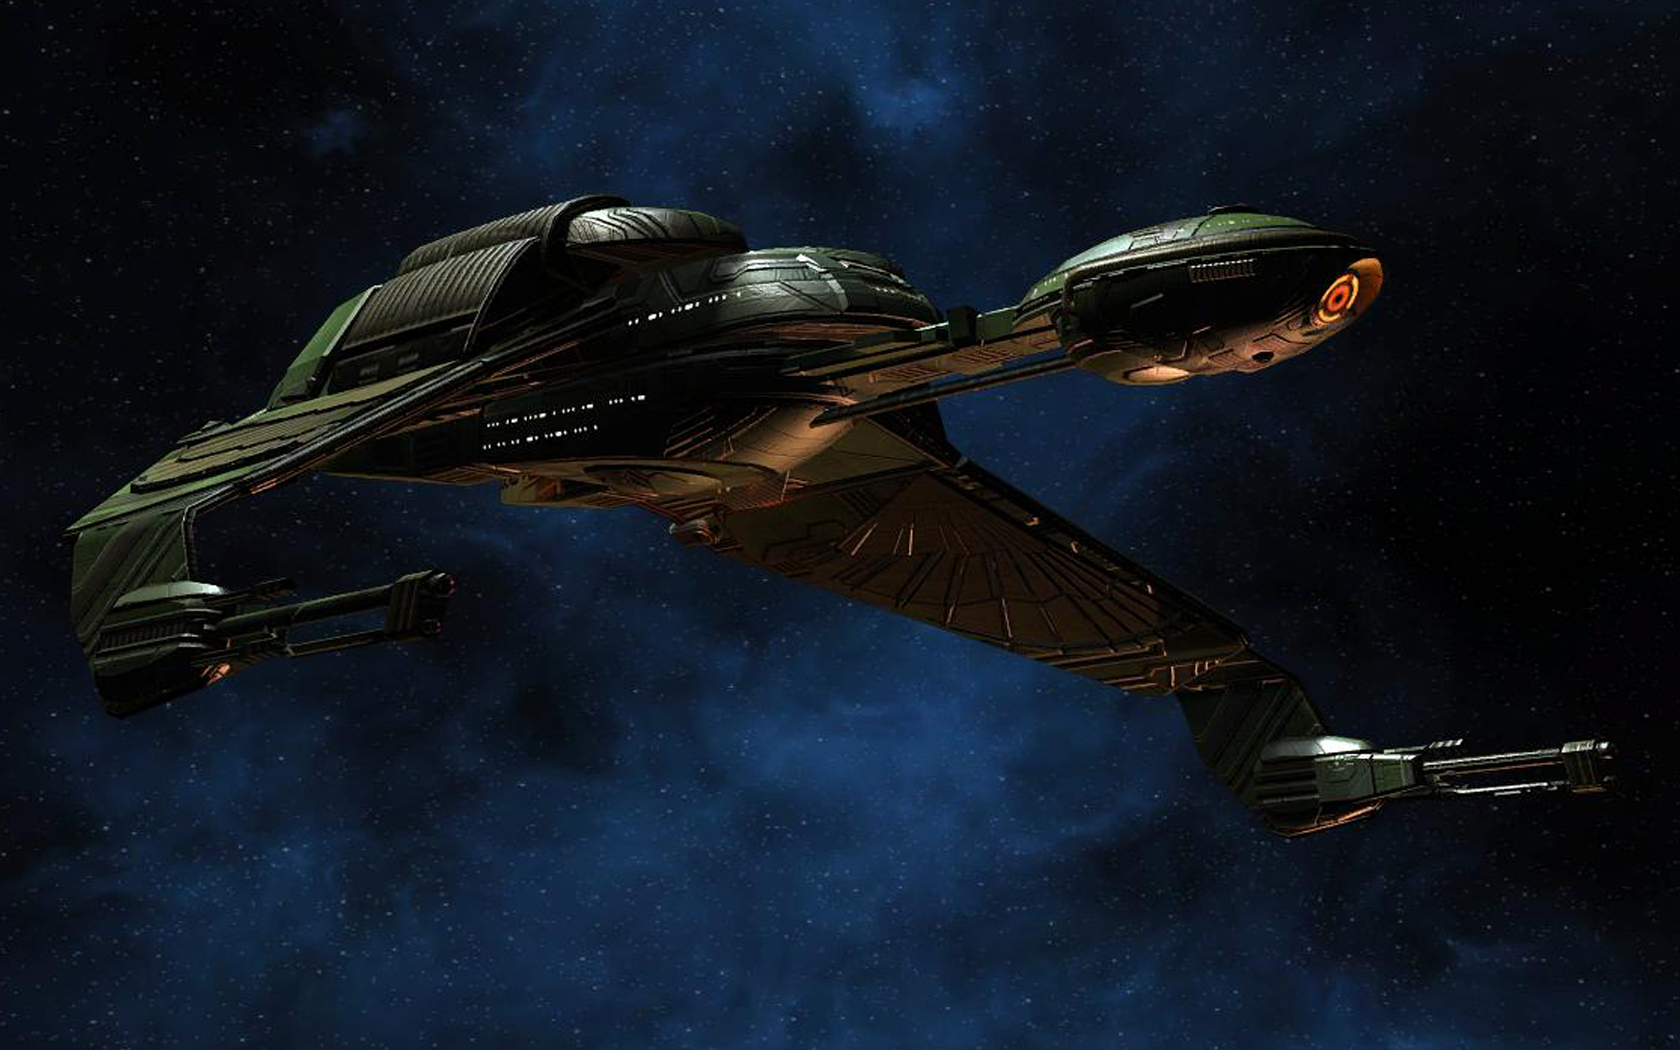 50 Klingon Bird Of Prey Wallpaper On Wallpapersafari